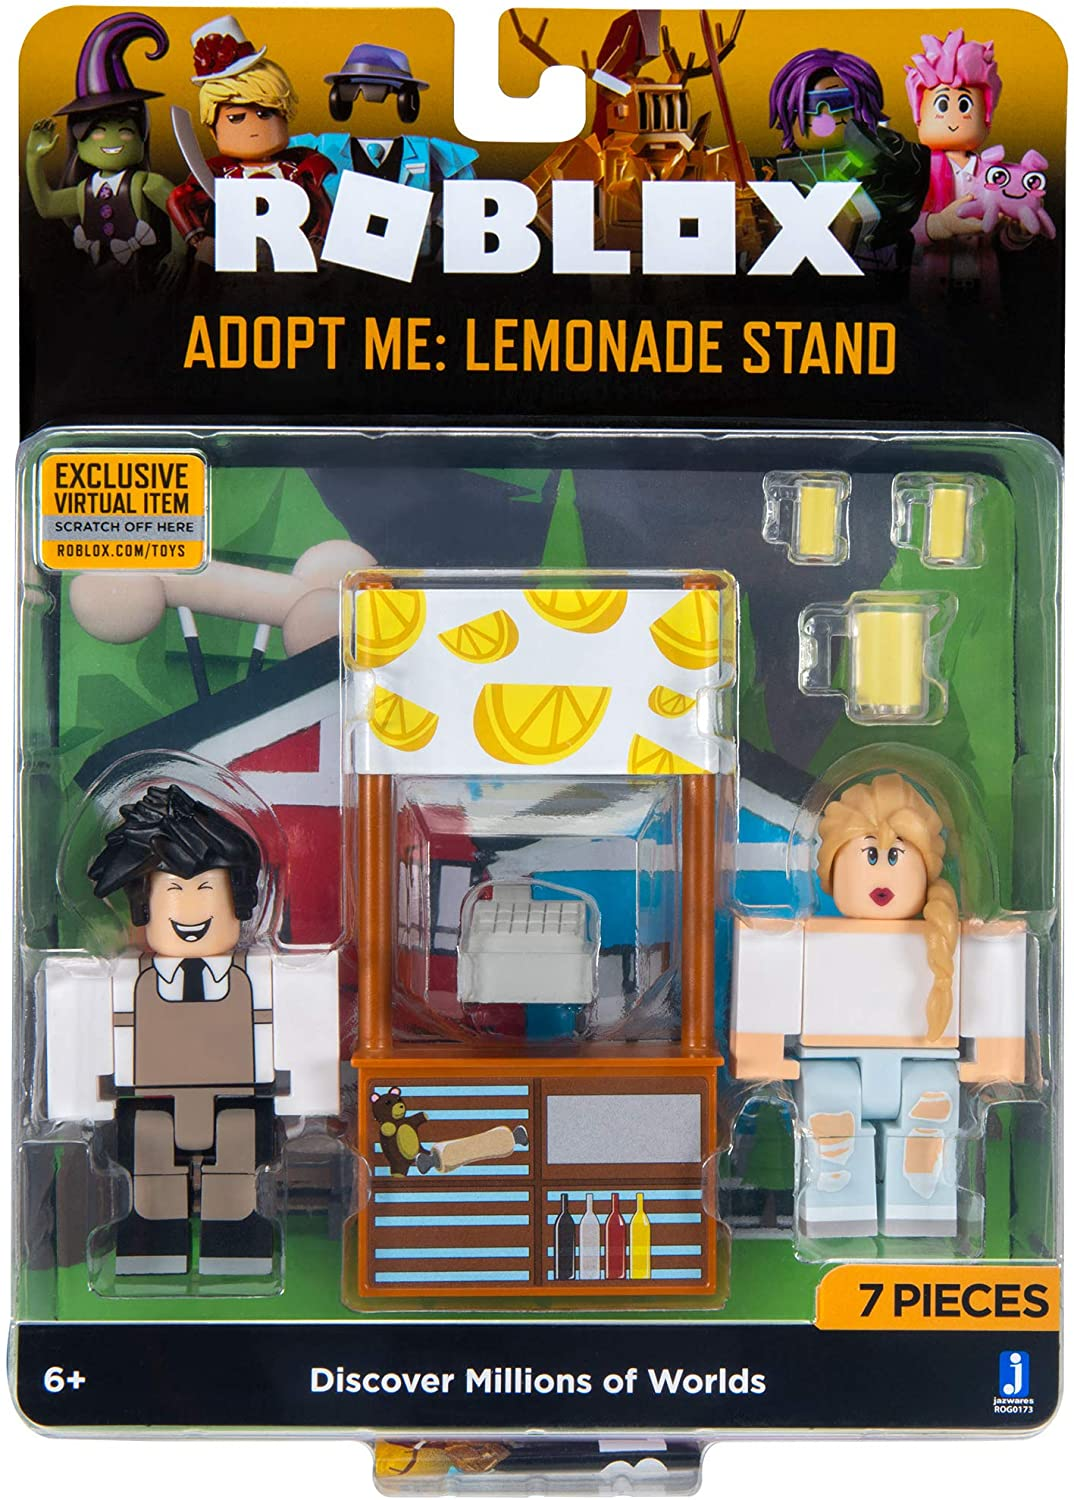 Plush Roblox Adopt Me Toys Amazon Com Roblox Celebrity Collection Adopt Me Lemonade Stand Game Pack Includes Exclusive Virtual Item Toys Games